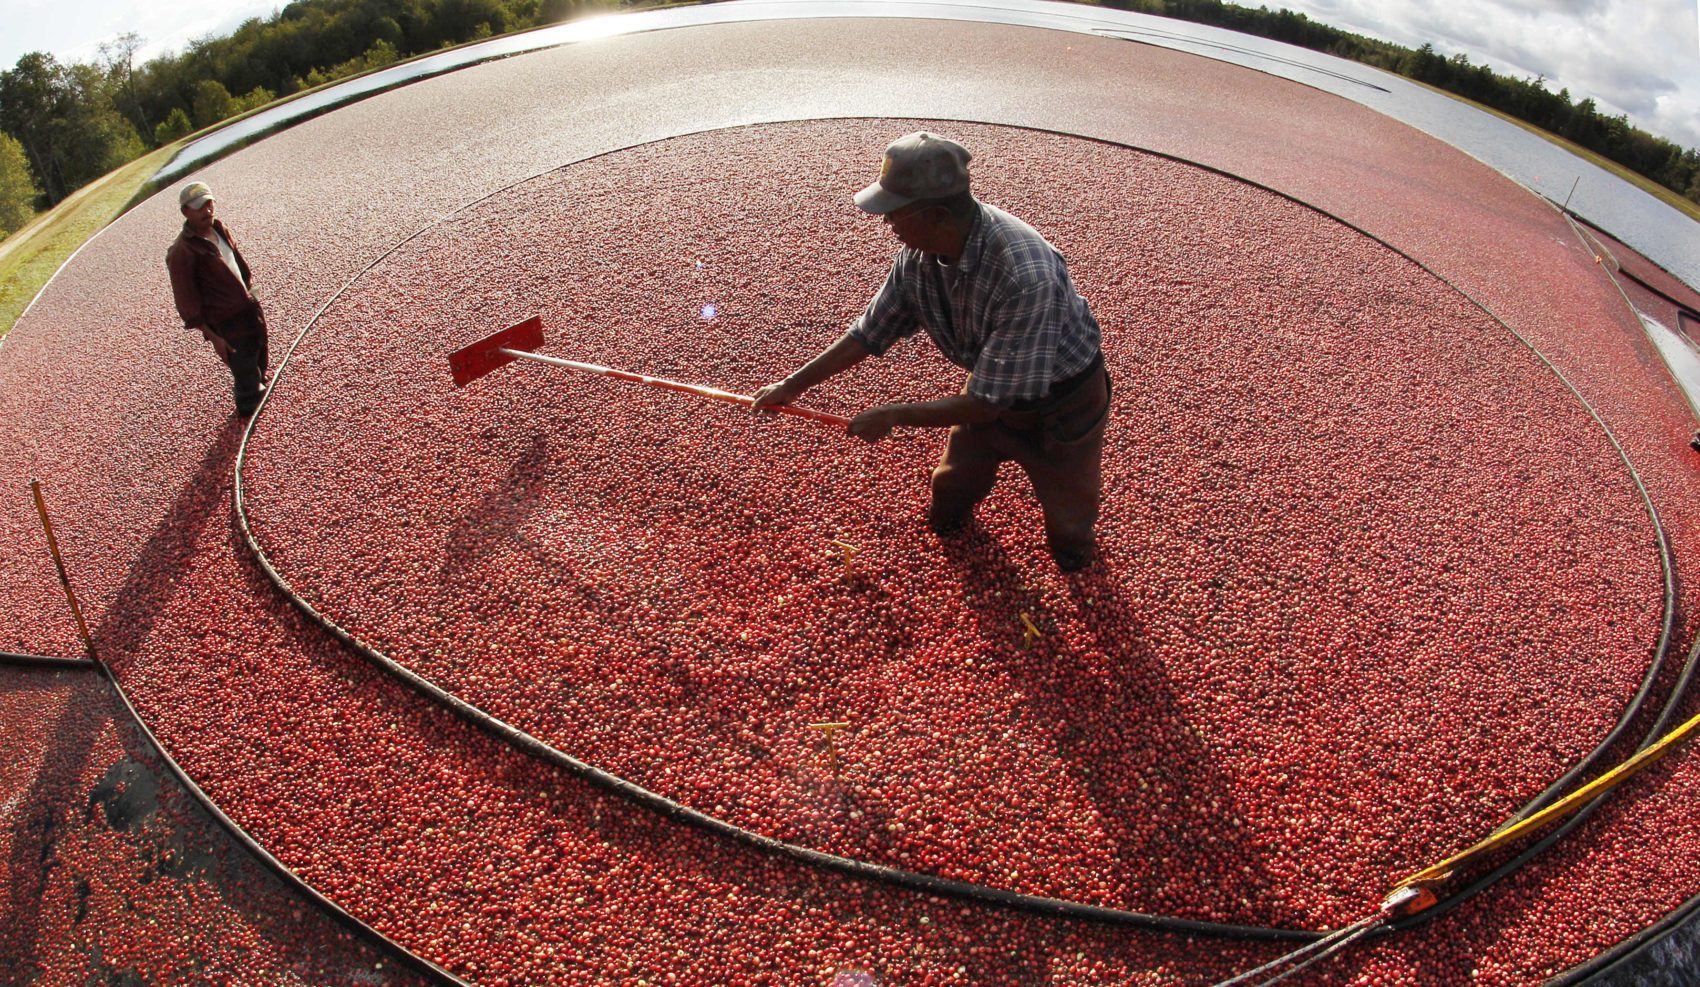 In this 2011 file photo, Miguel Sandel of Middleborough rakes cranberries into a loading tube during an afternoon harvest at the Hannula cranberry bogs in Carver.  (Charles Krupa/AP)